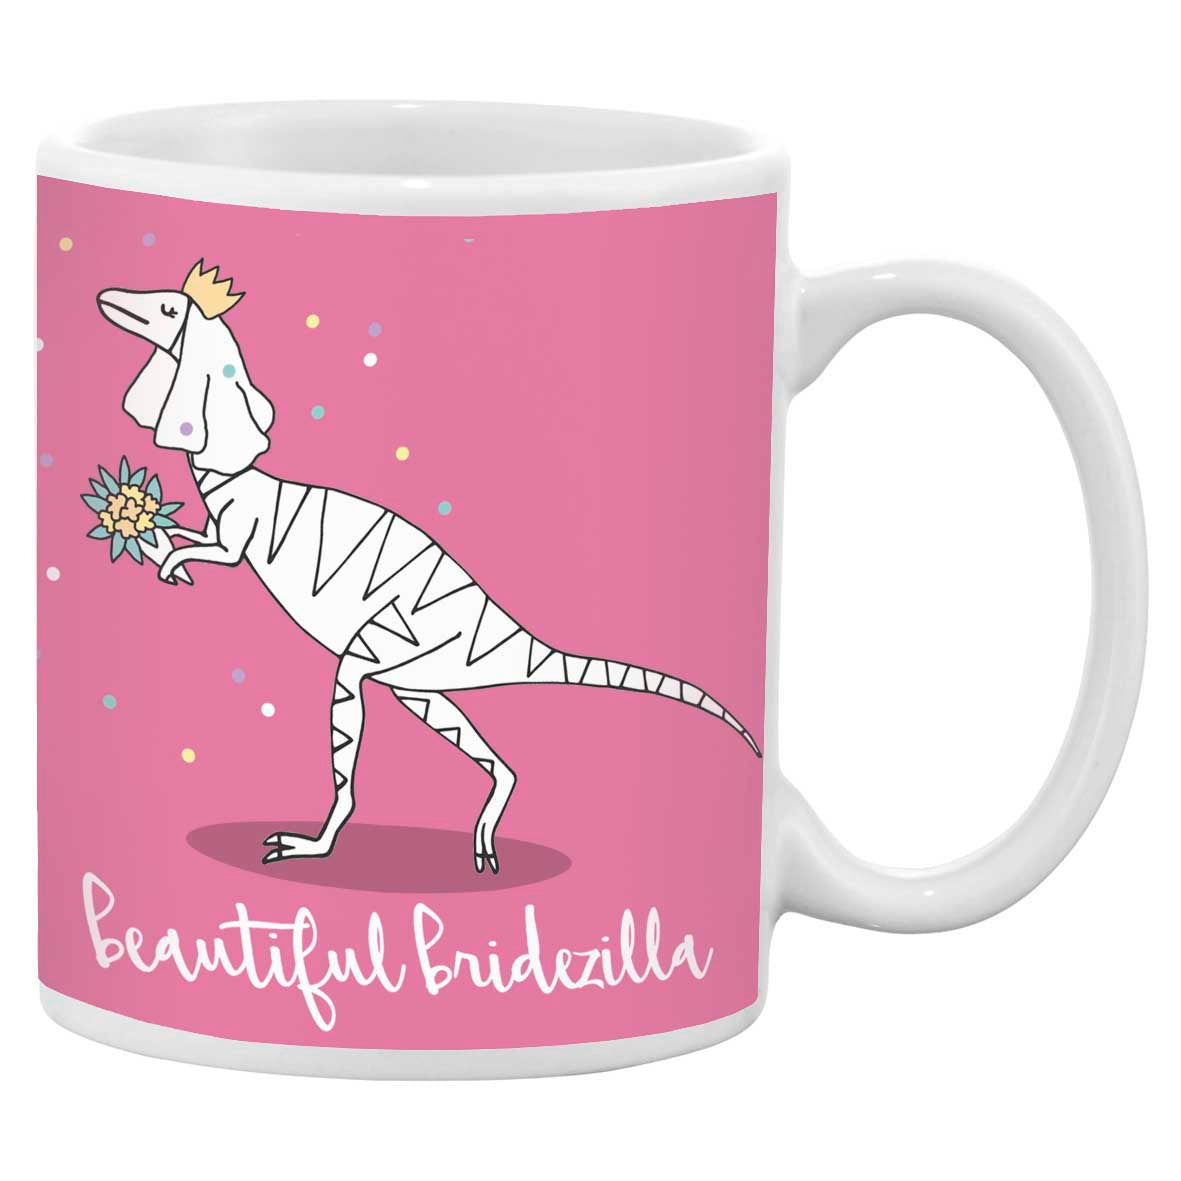 Pink mug with an illustration of a dinosaur and the words beautiful bridezilla